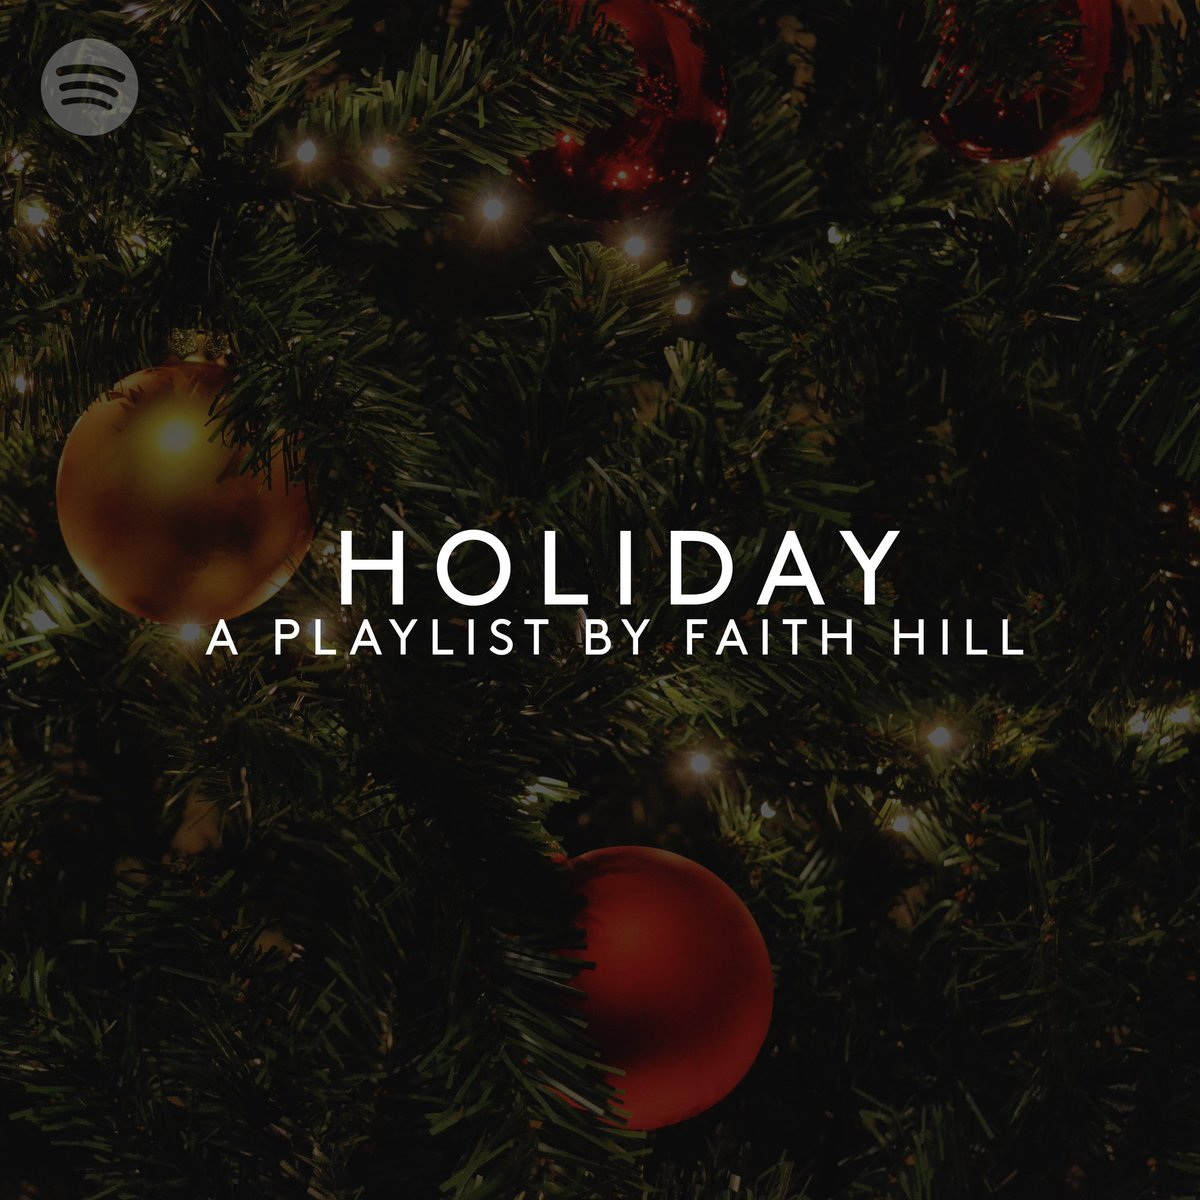 Check out some of my favorite holiday tunes! https://t.co/06iODFwkBi https://t.co/nk9u7i0N4H